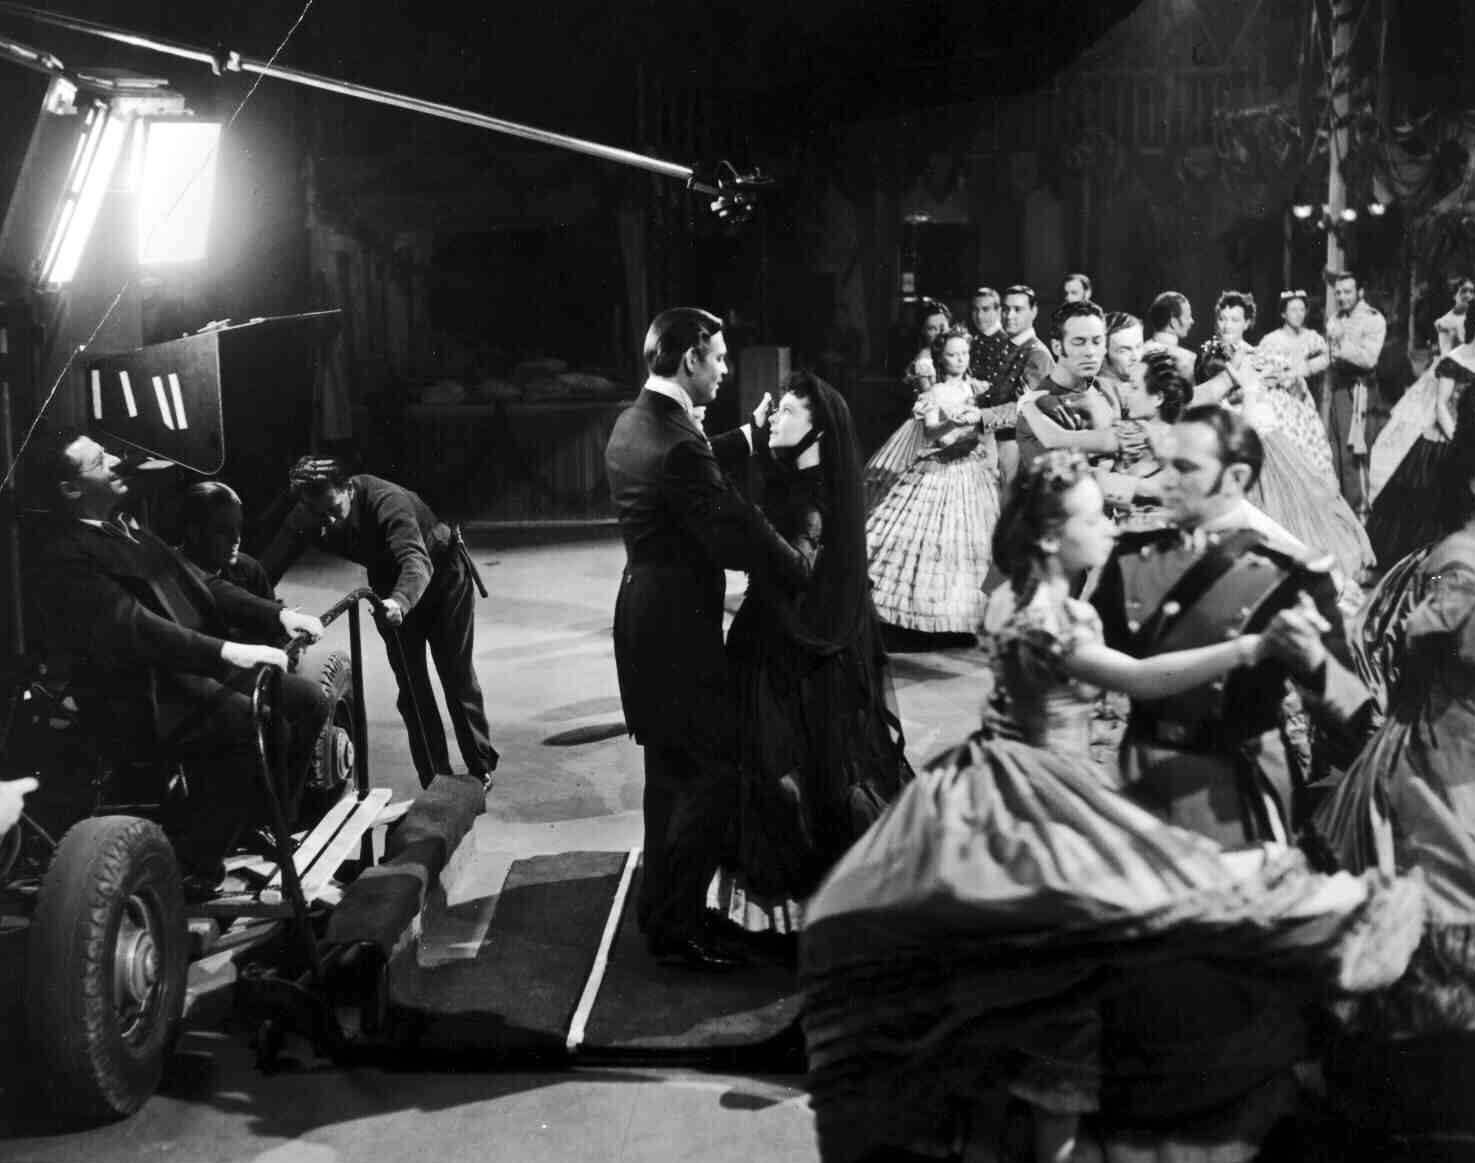 Clark Gable and Vivien Leigh on the set of Gone with the Wind in 1939.